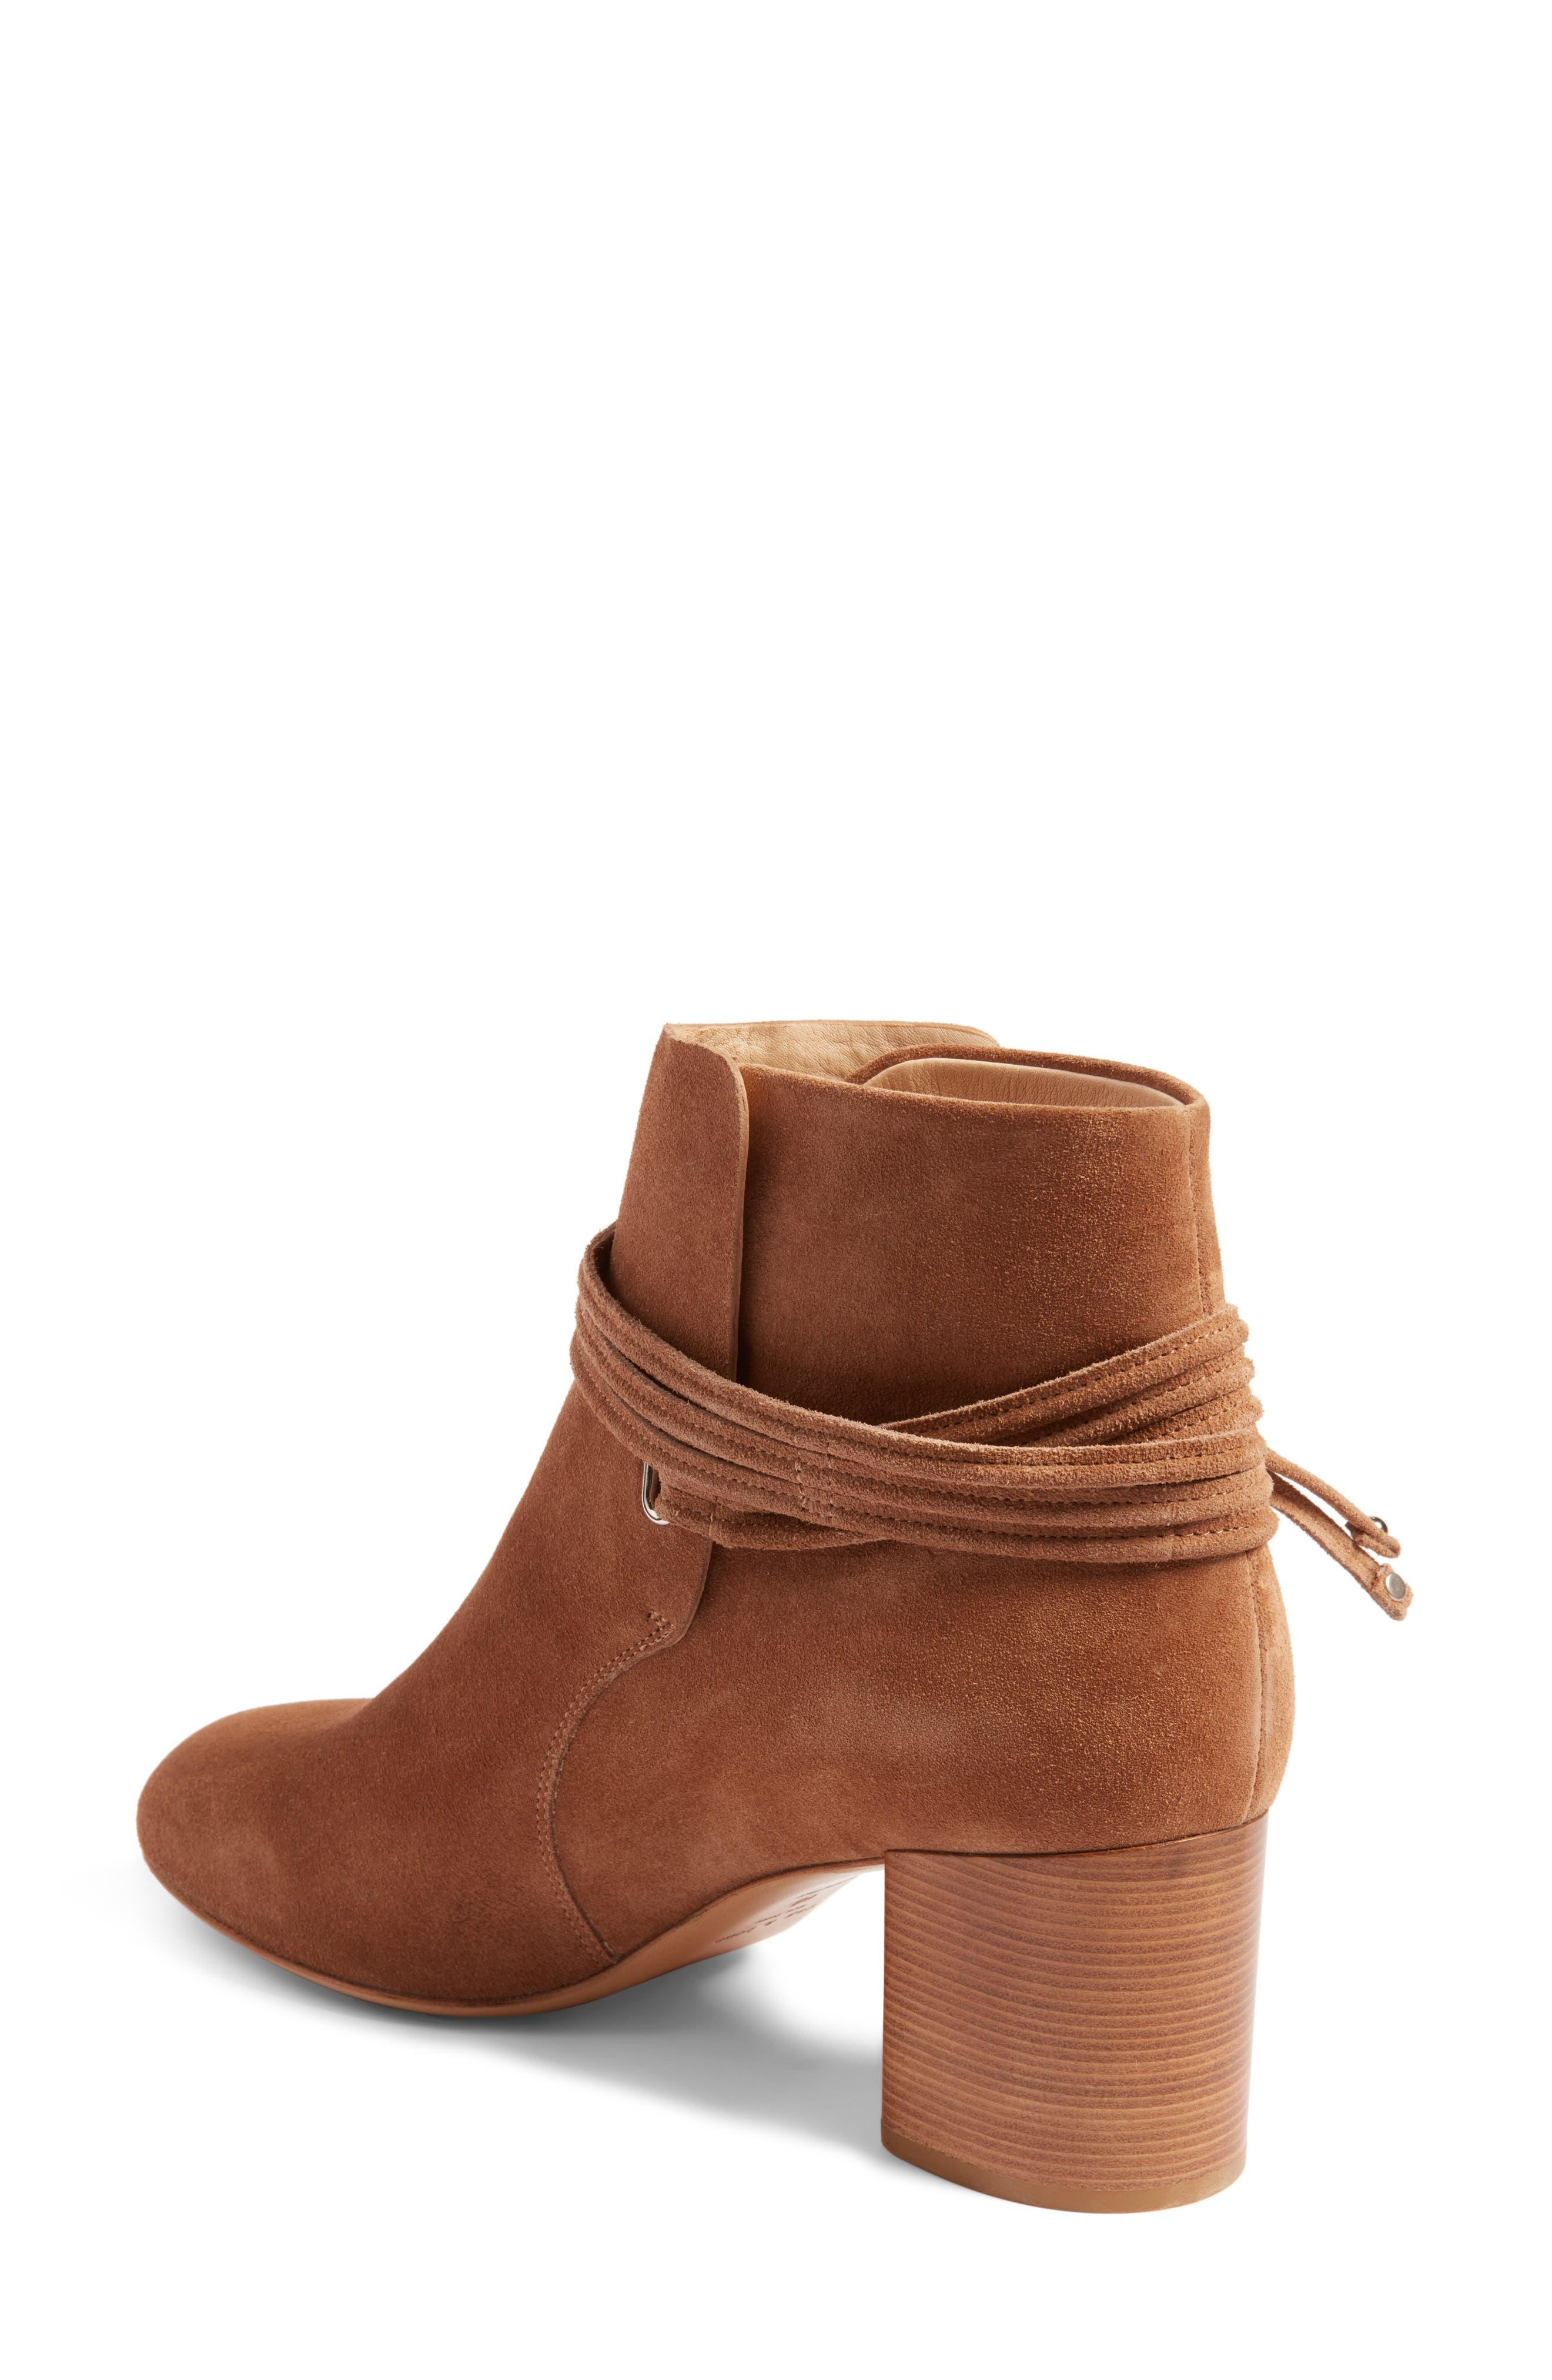 Alternate Image 2  - rag & bone Dalia II Tie-Strap Bootie (Women)